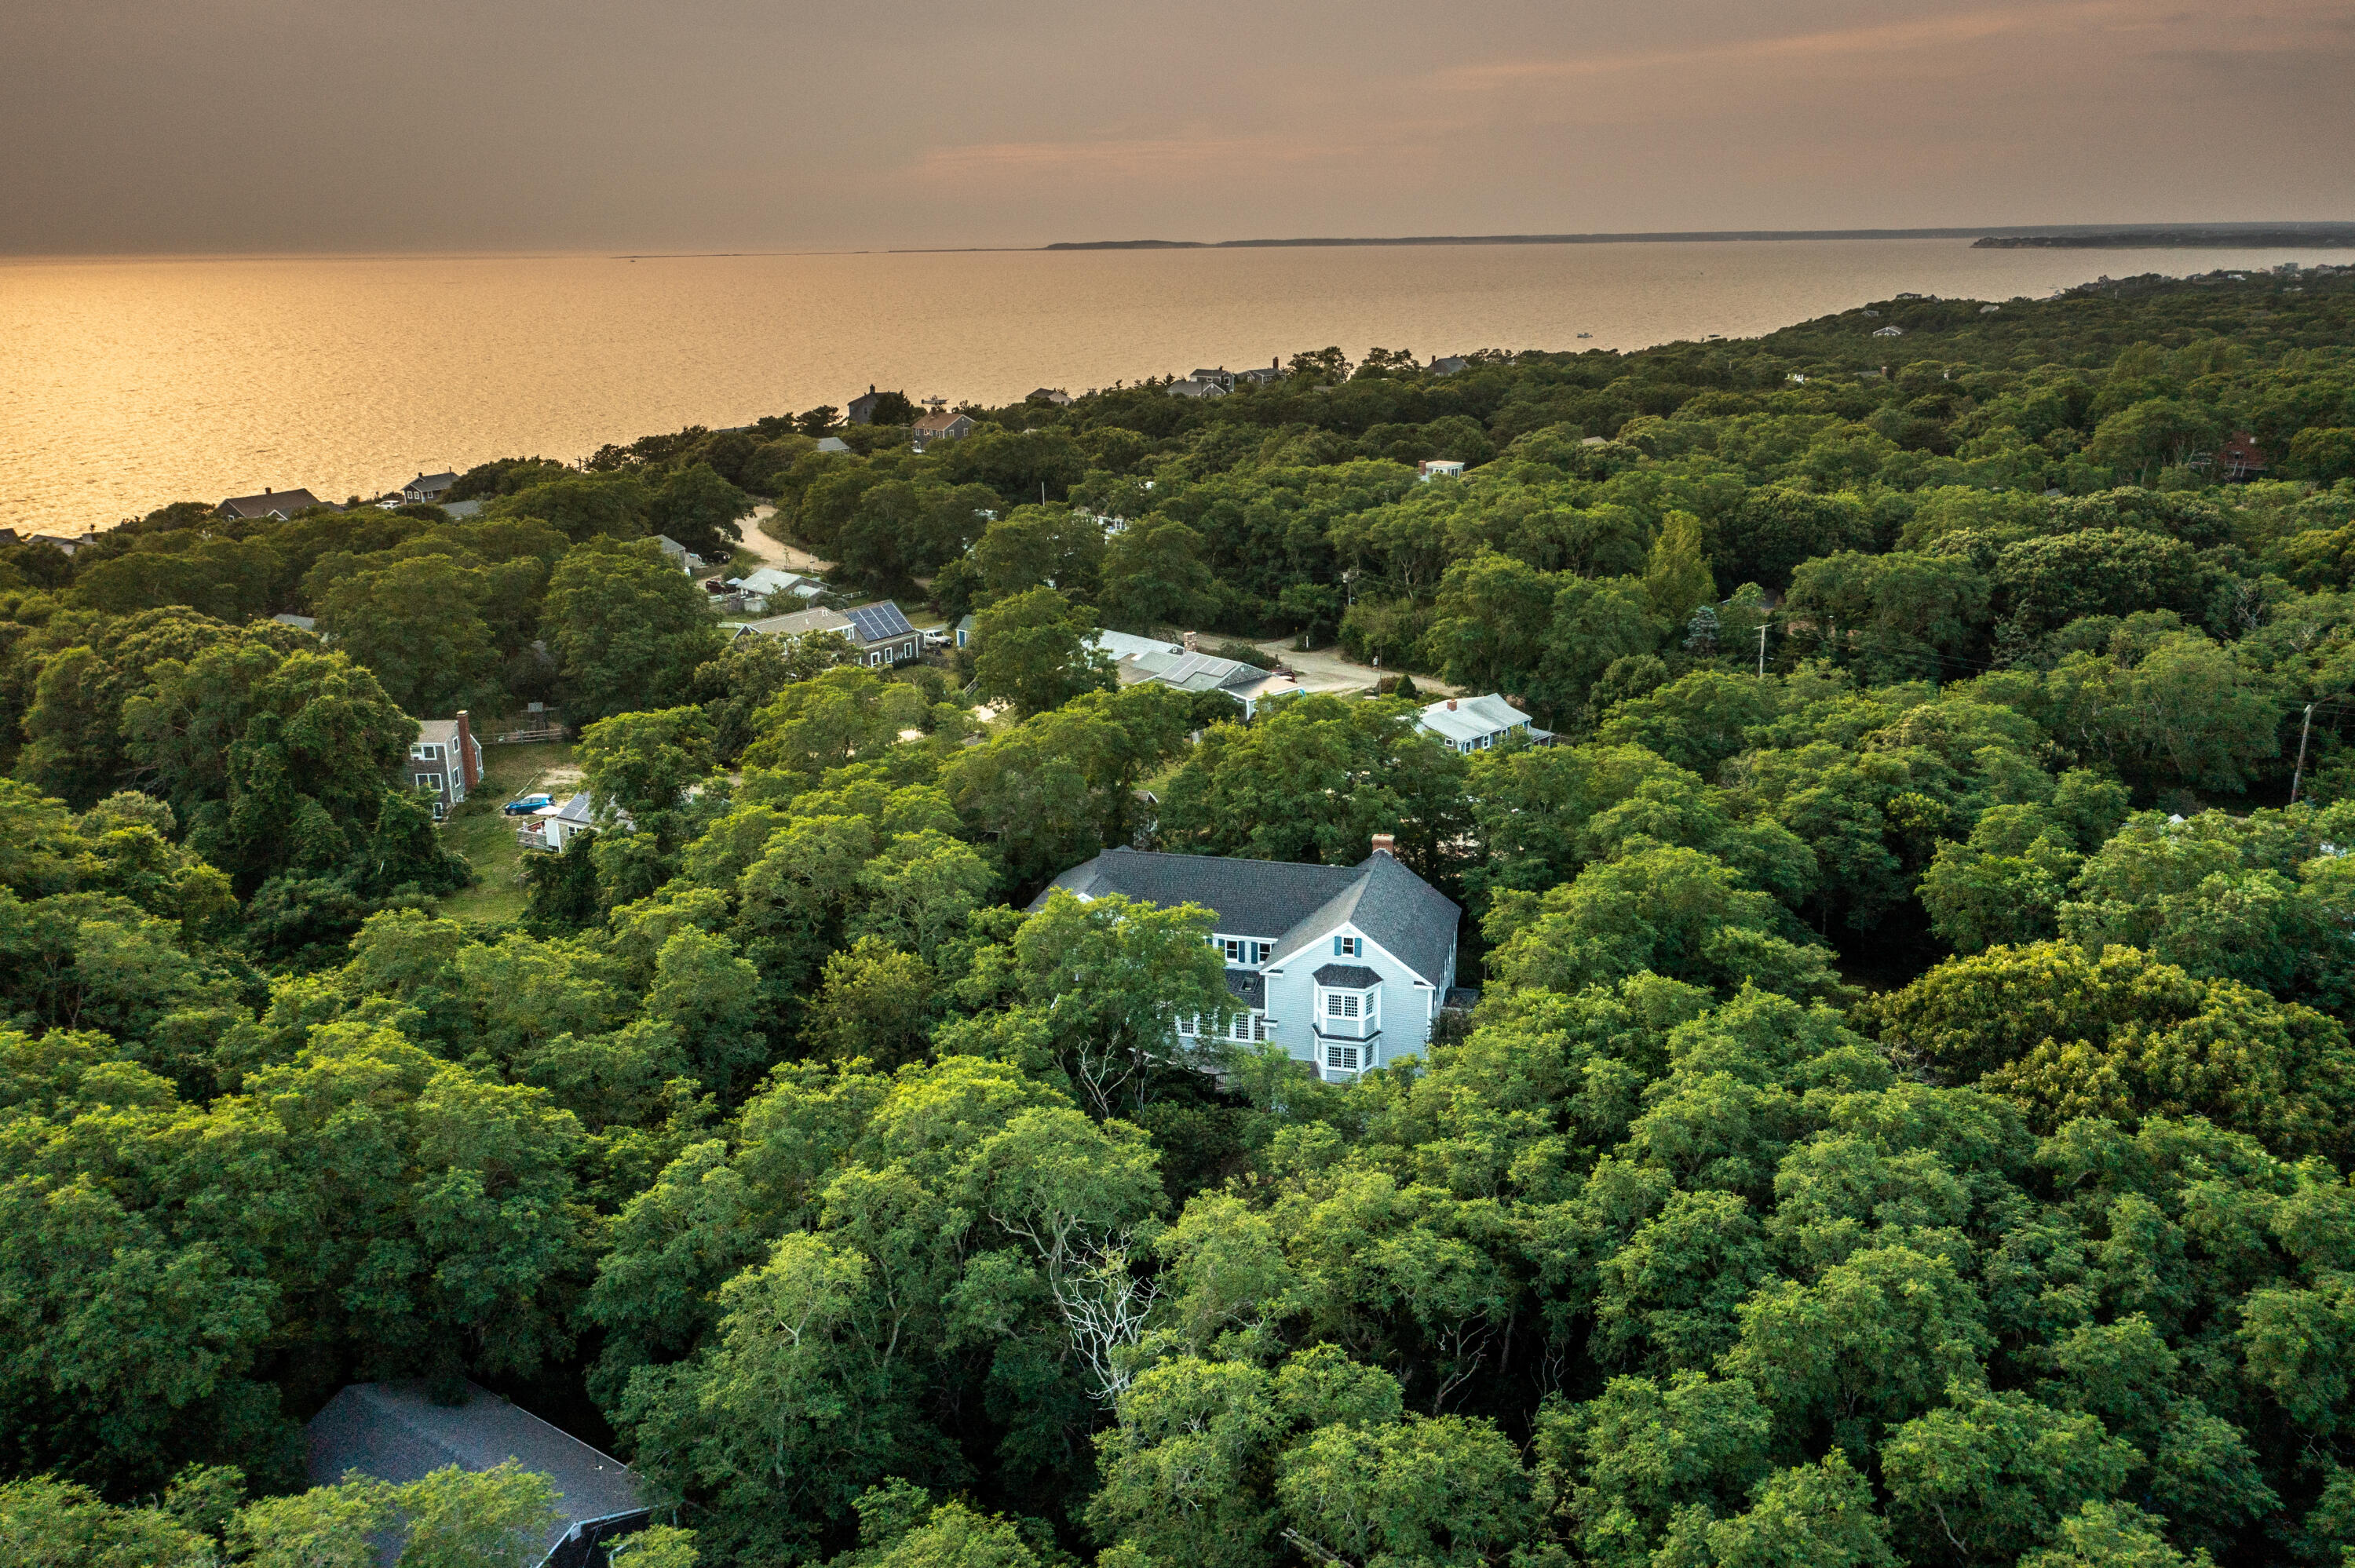 105 Townsend Rd. Extension, Eastham MA, 02642 sales details